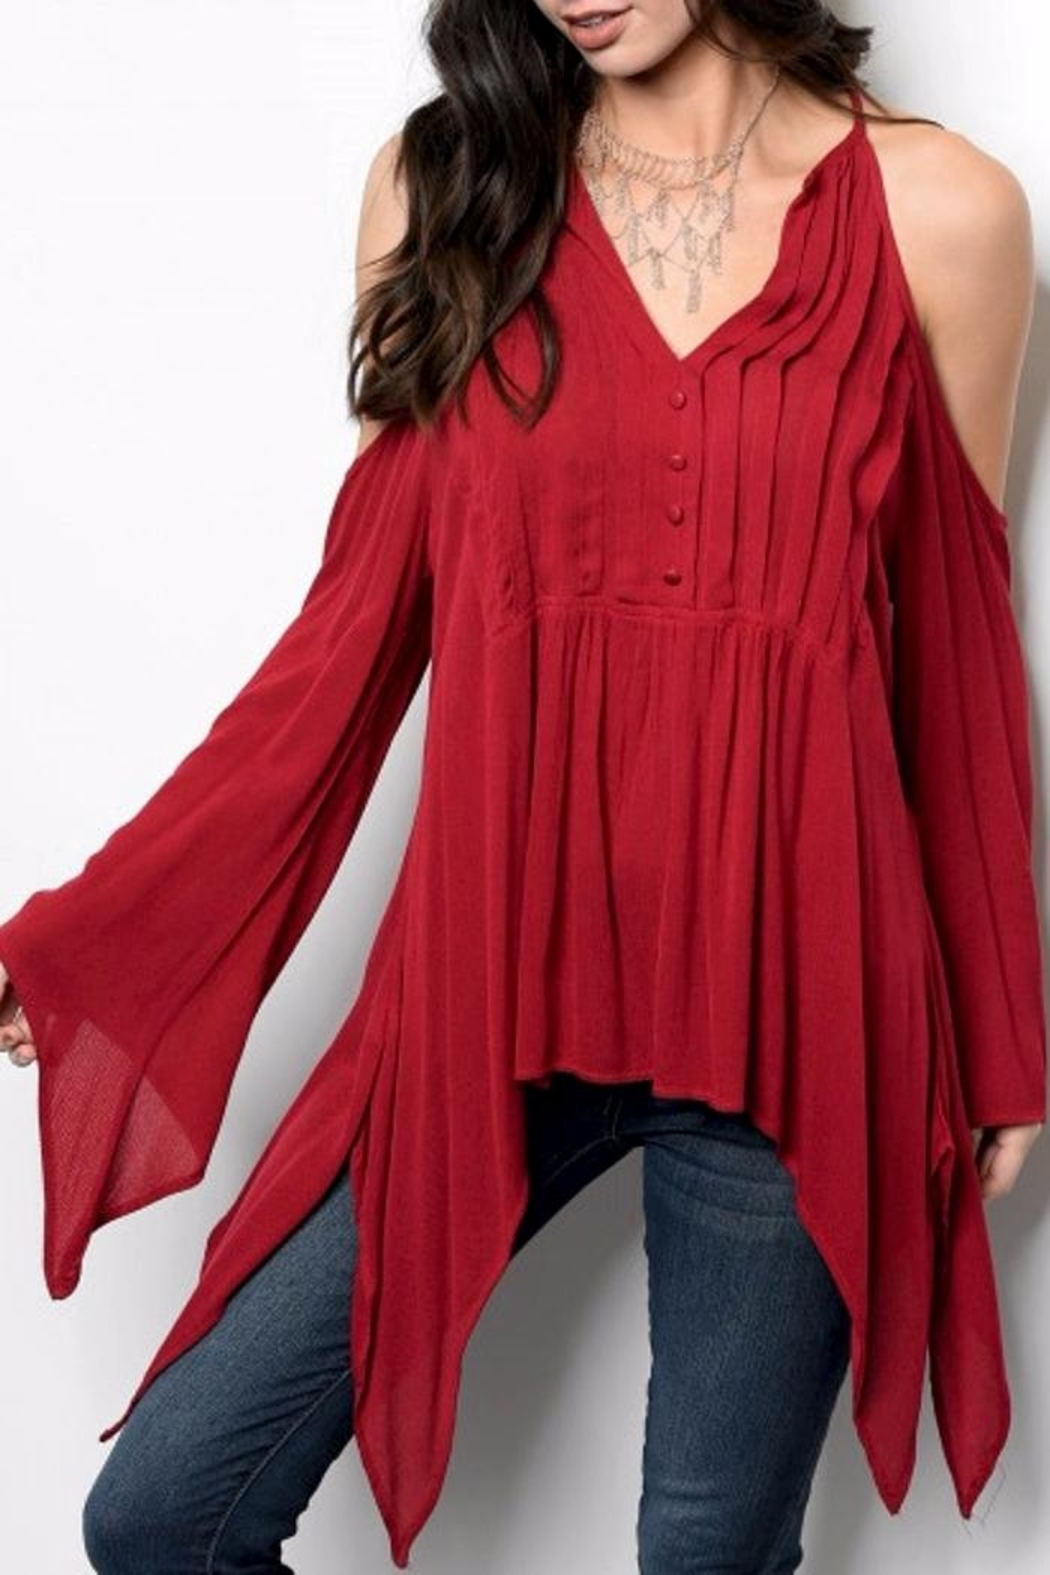 People Outfitter Bell Sleeve Top - Main Image